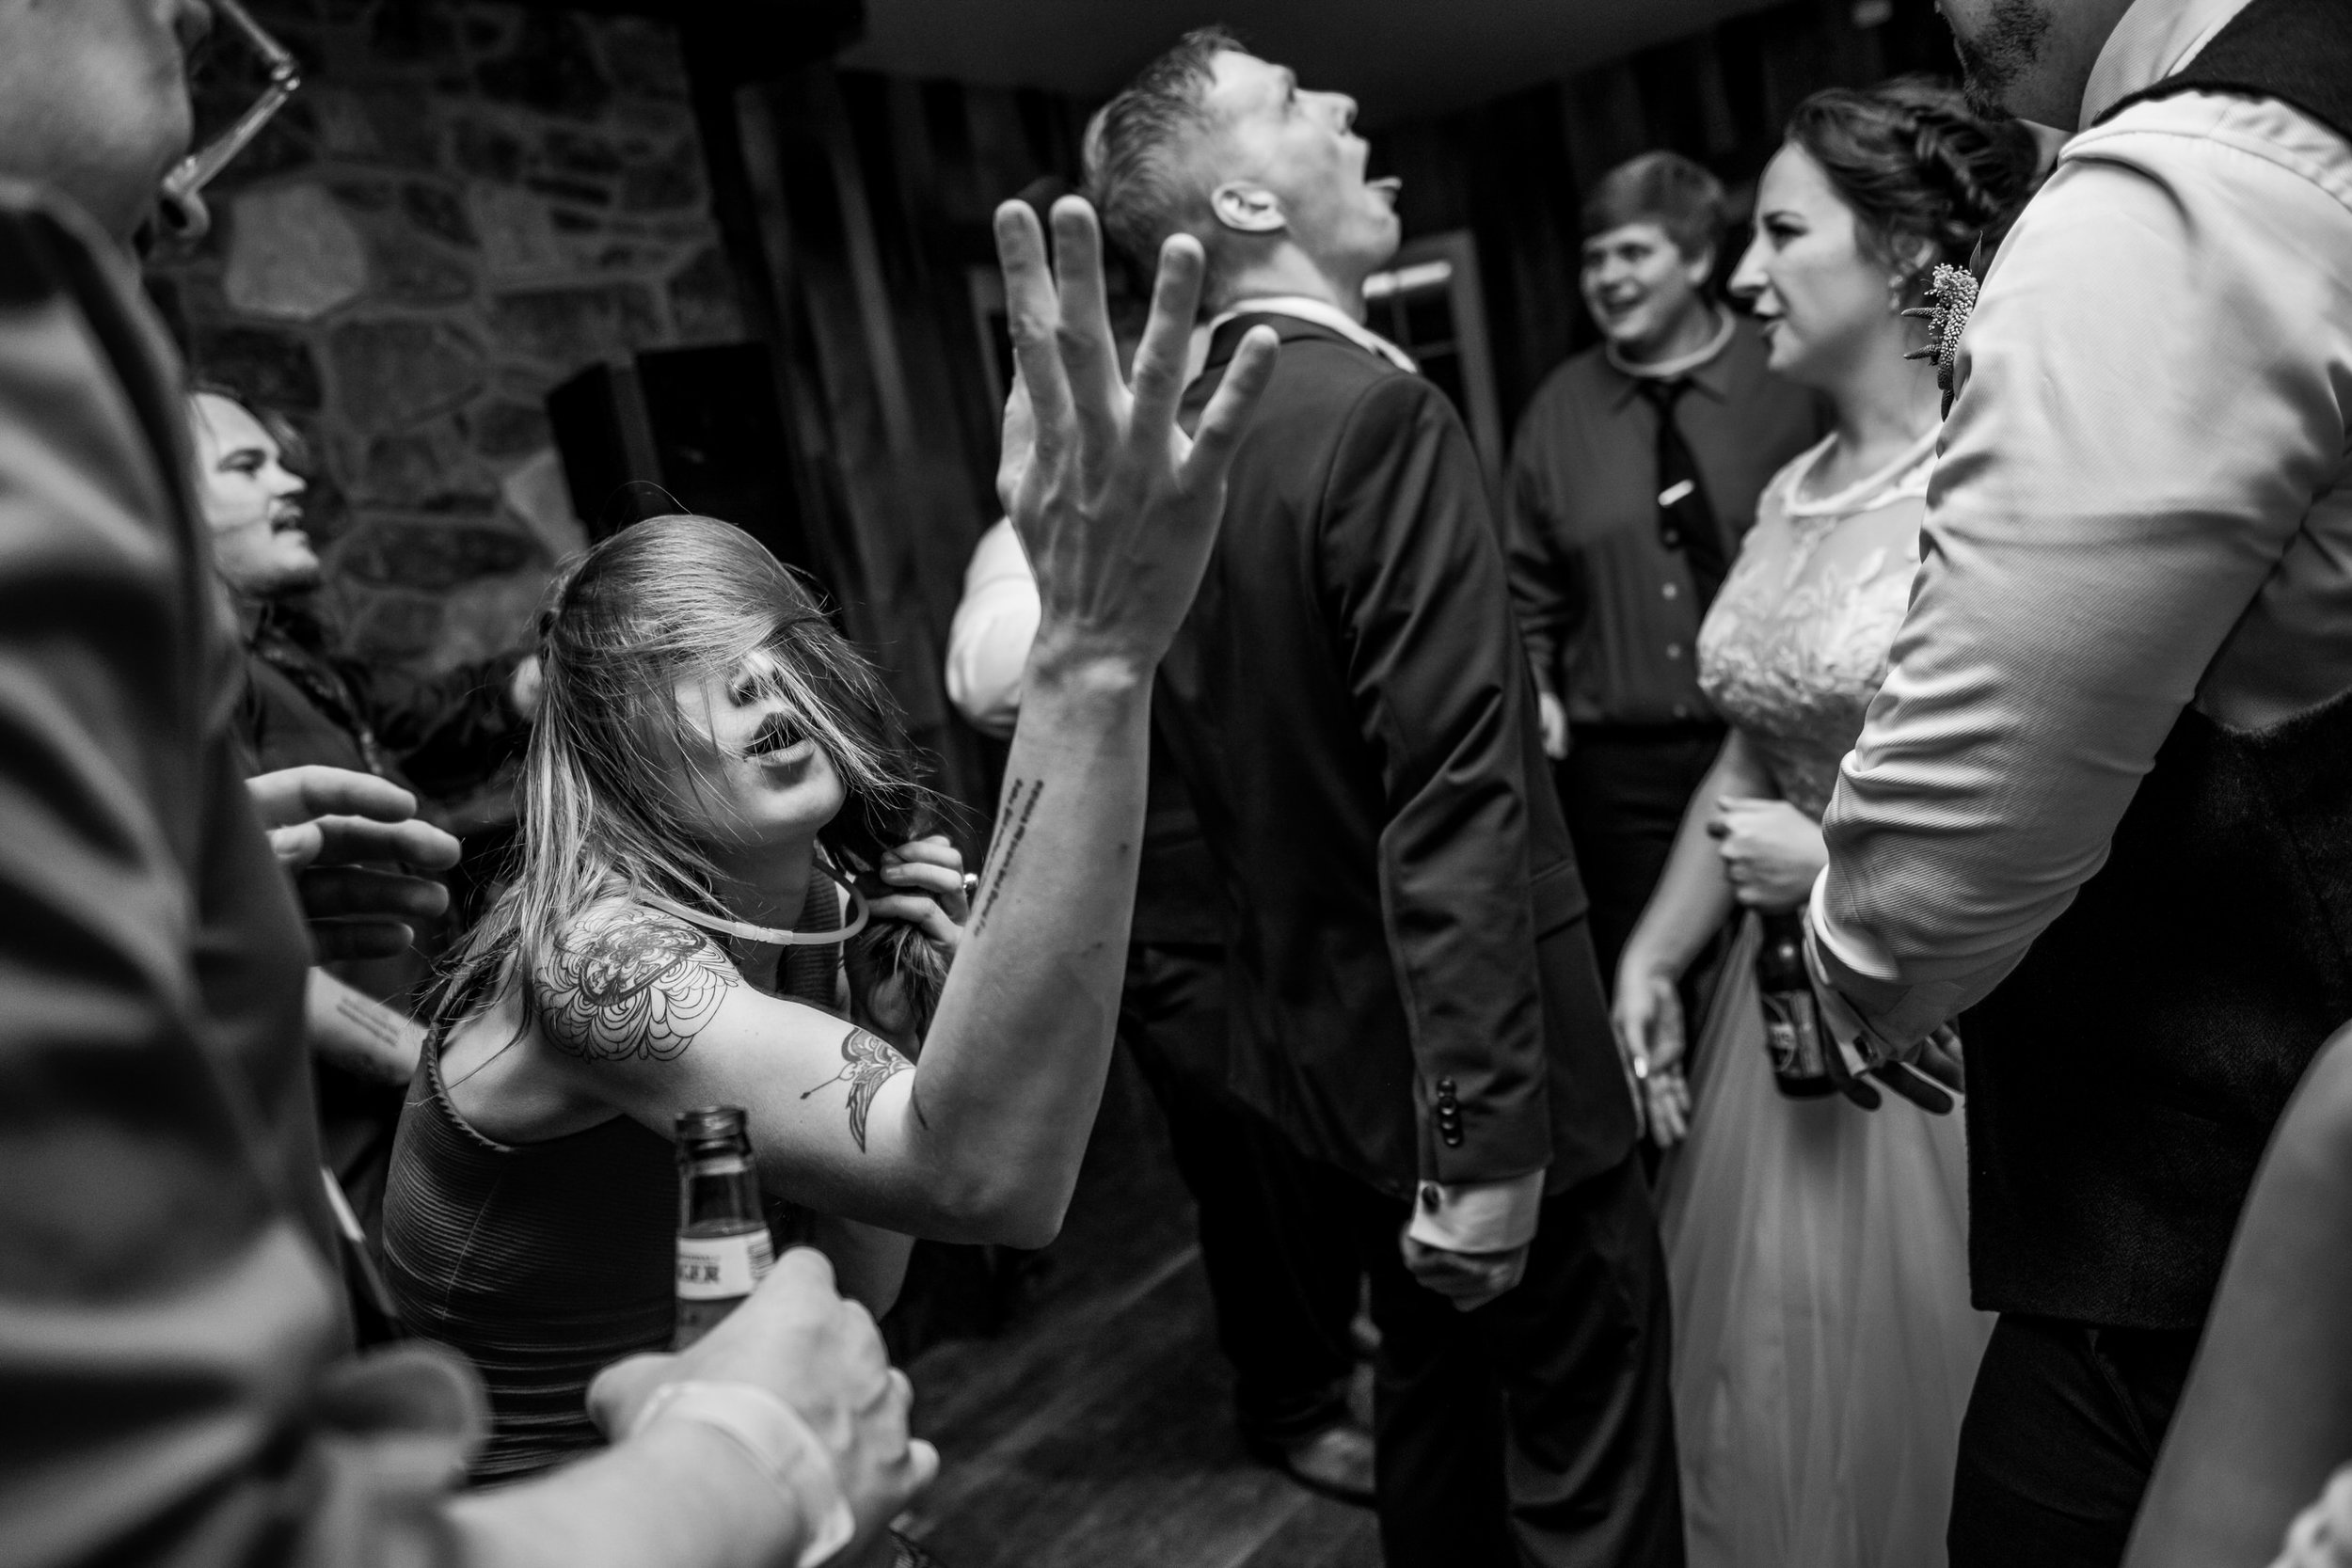 ThorpewoodWedding-Eileen&Chris-Reception-8776.jpg